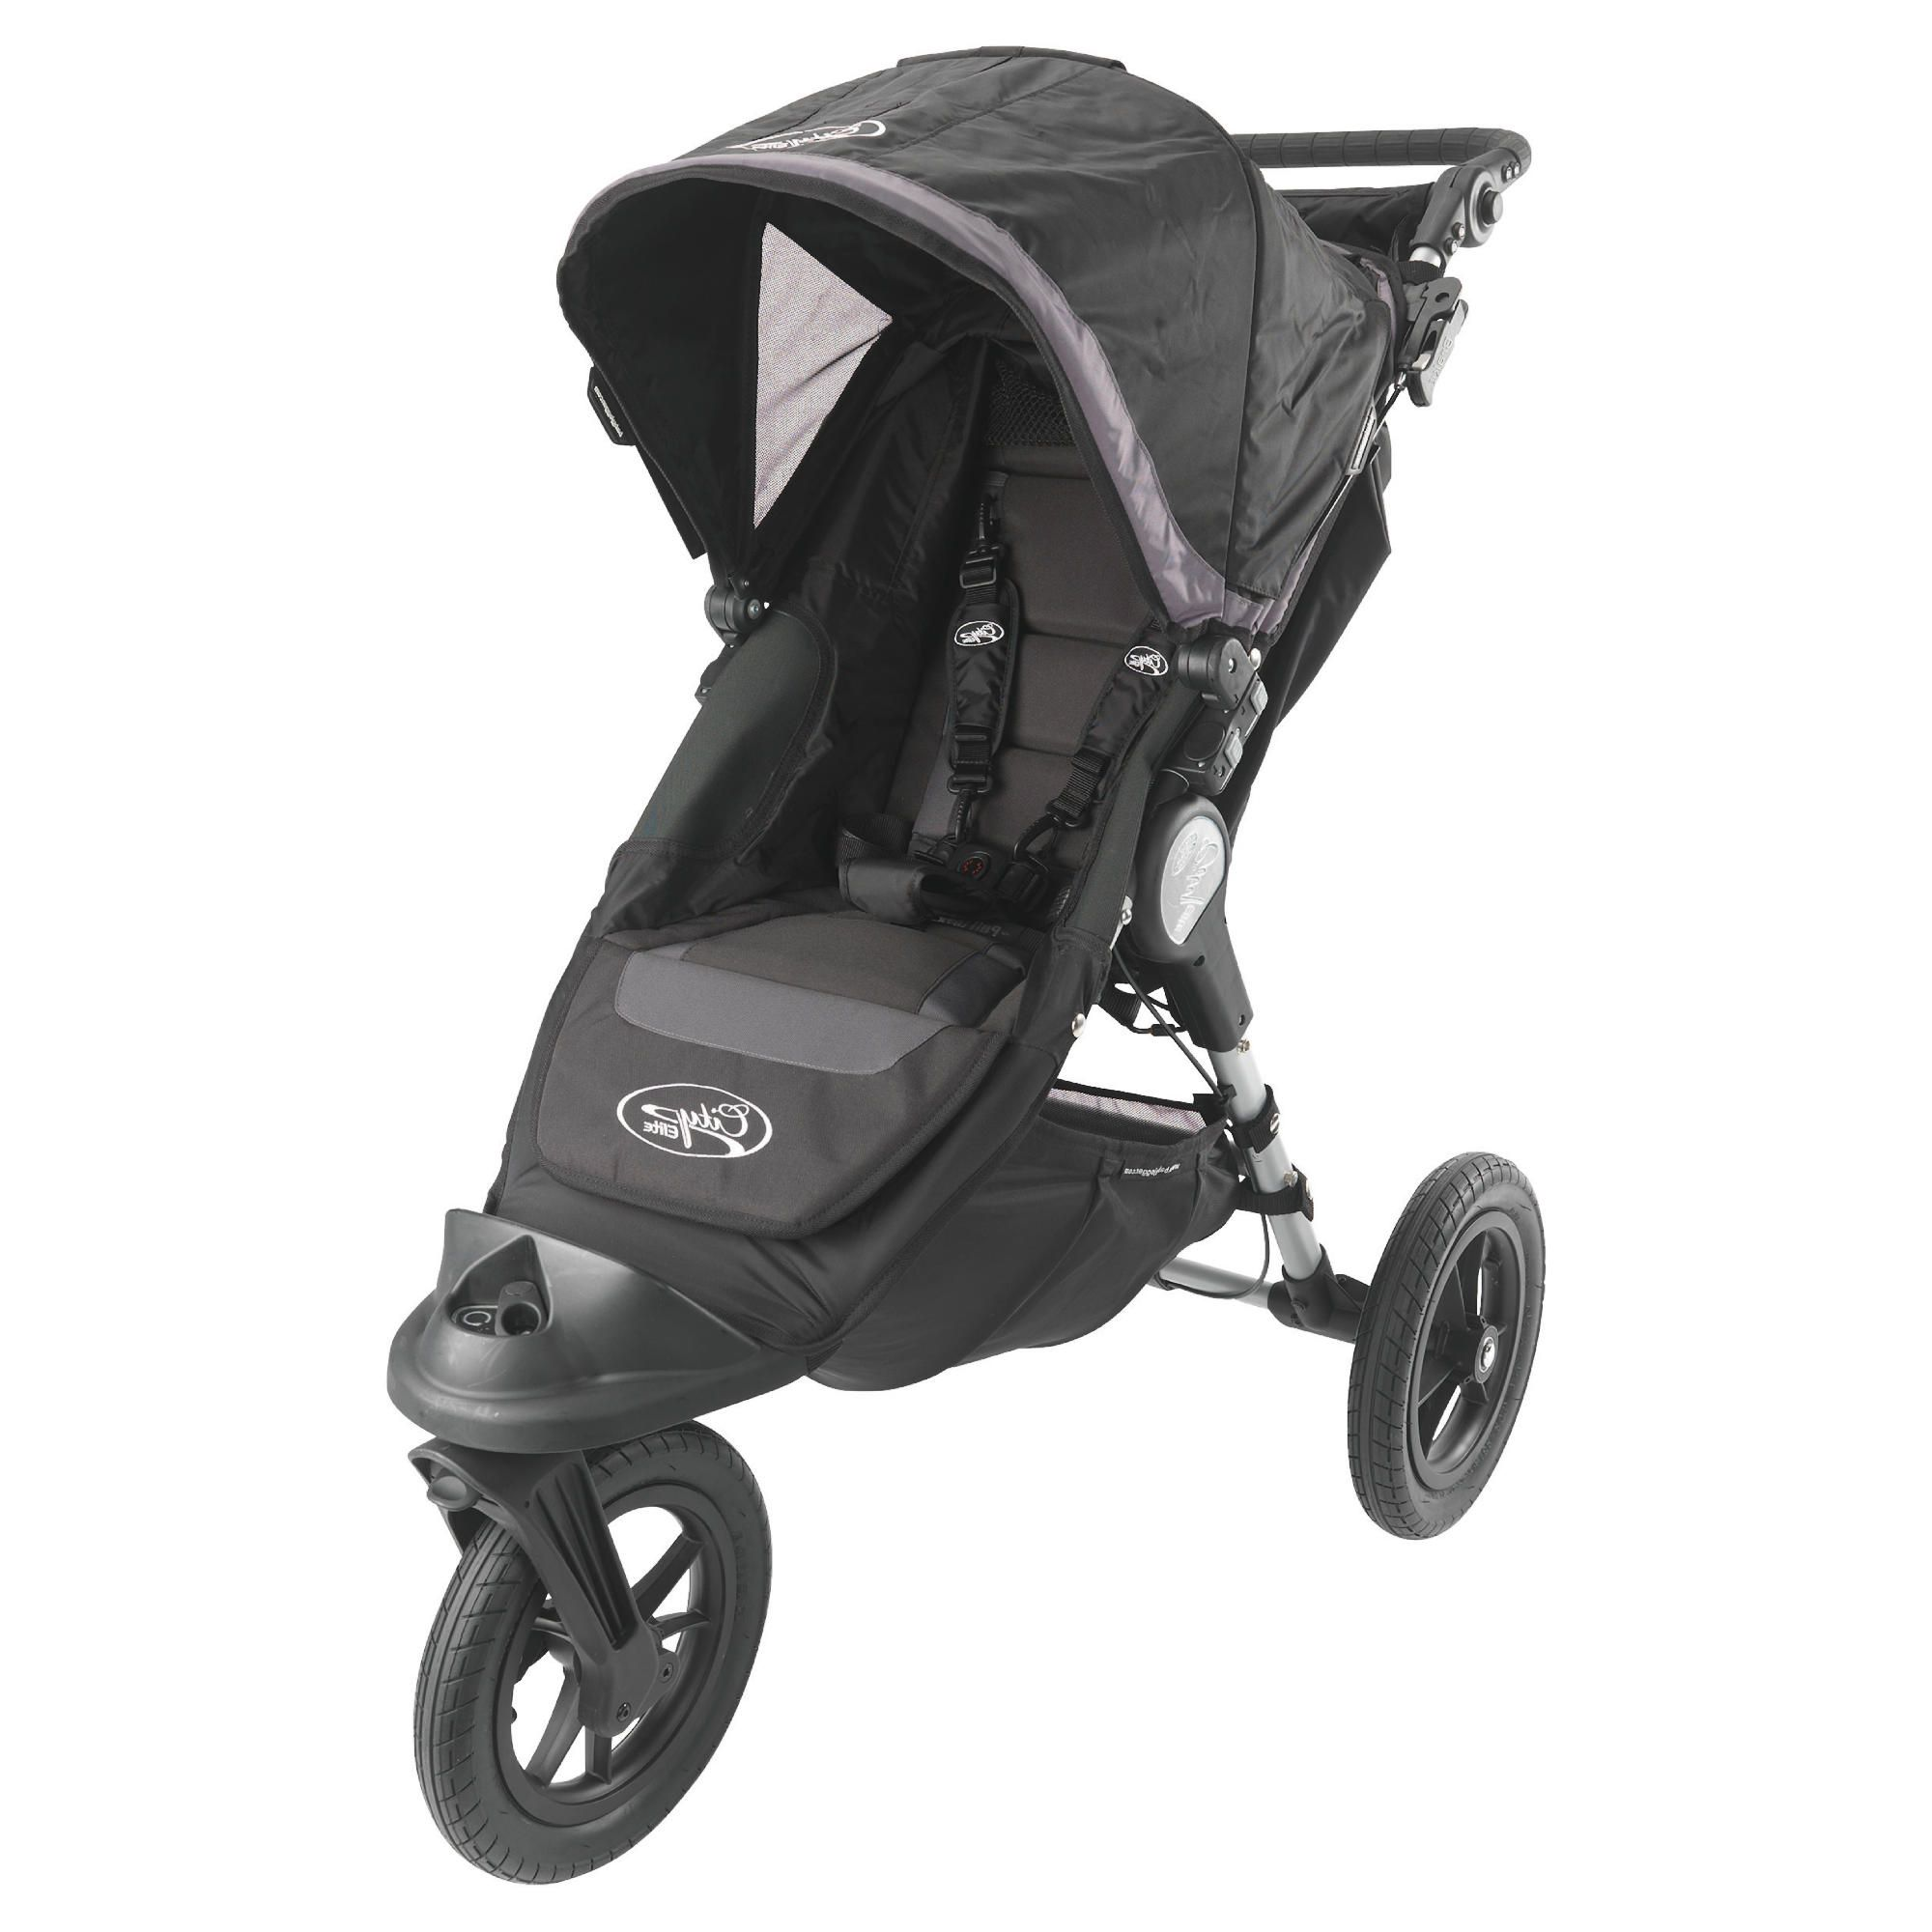 Baby Jogger Elite 3 Wheeler Pushchair, Black Sport at Tesco Direct